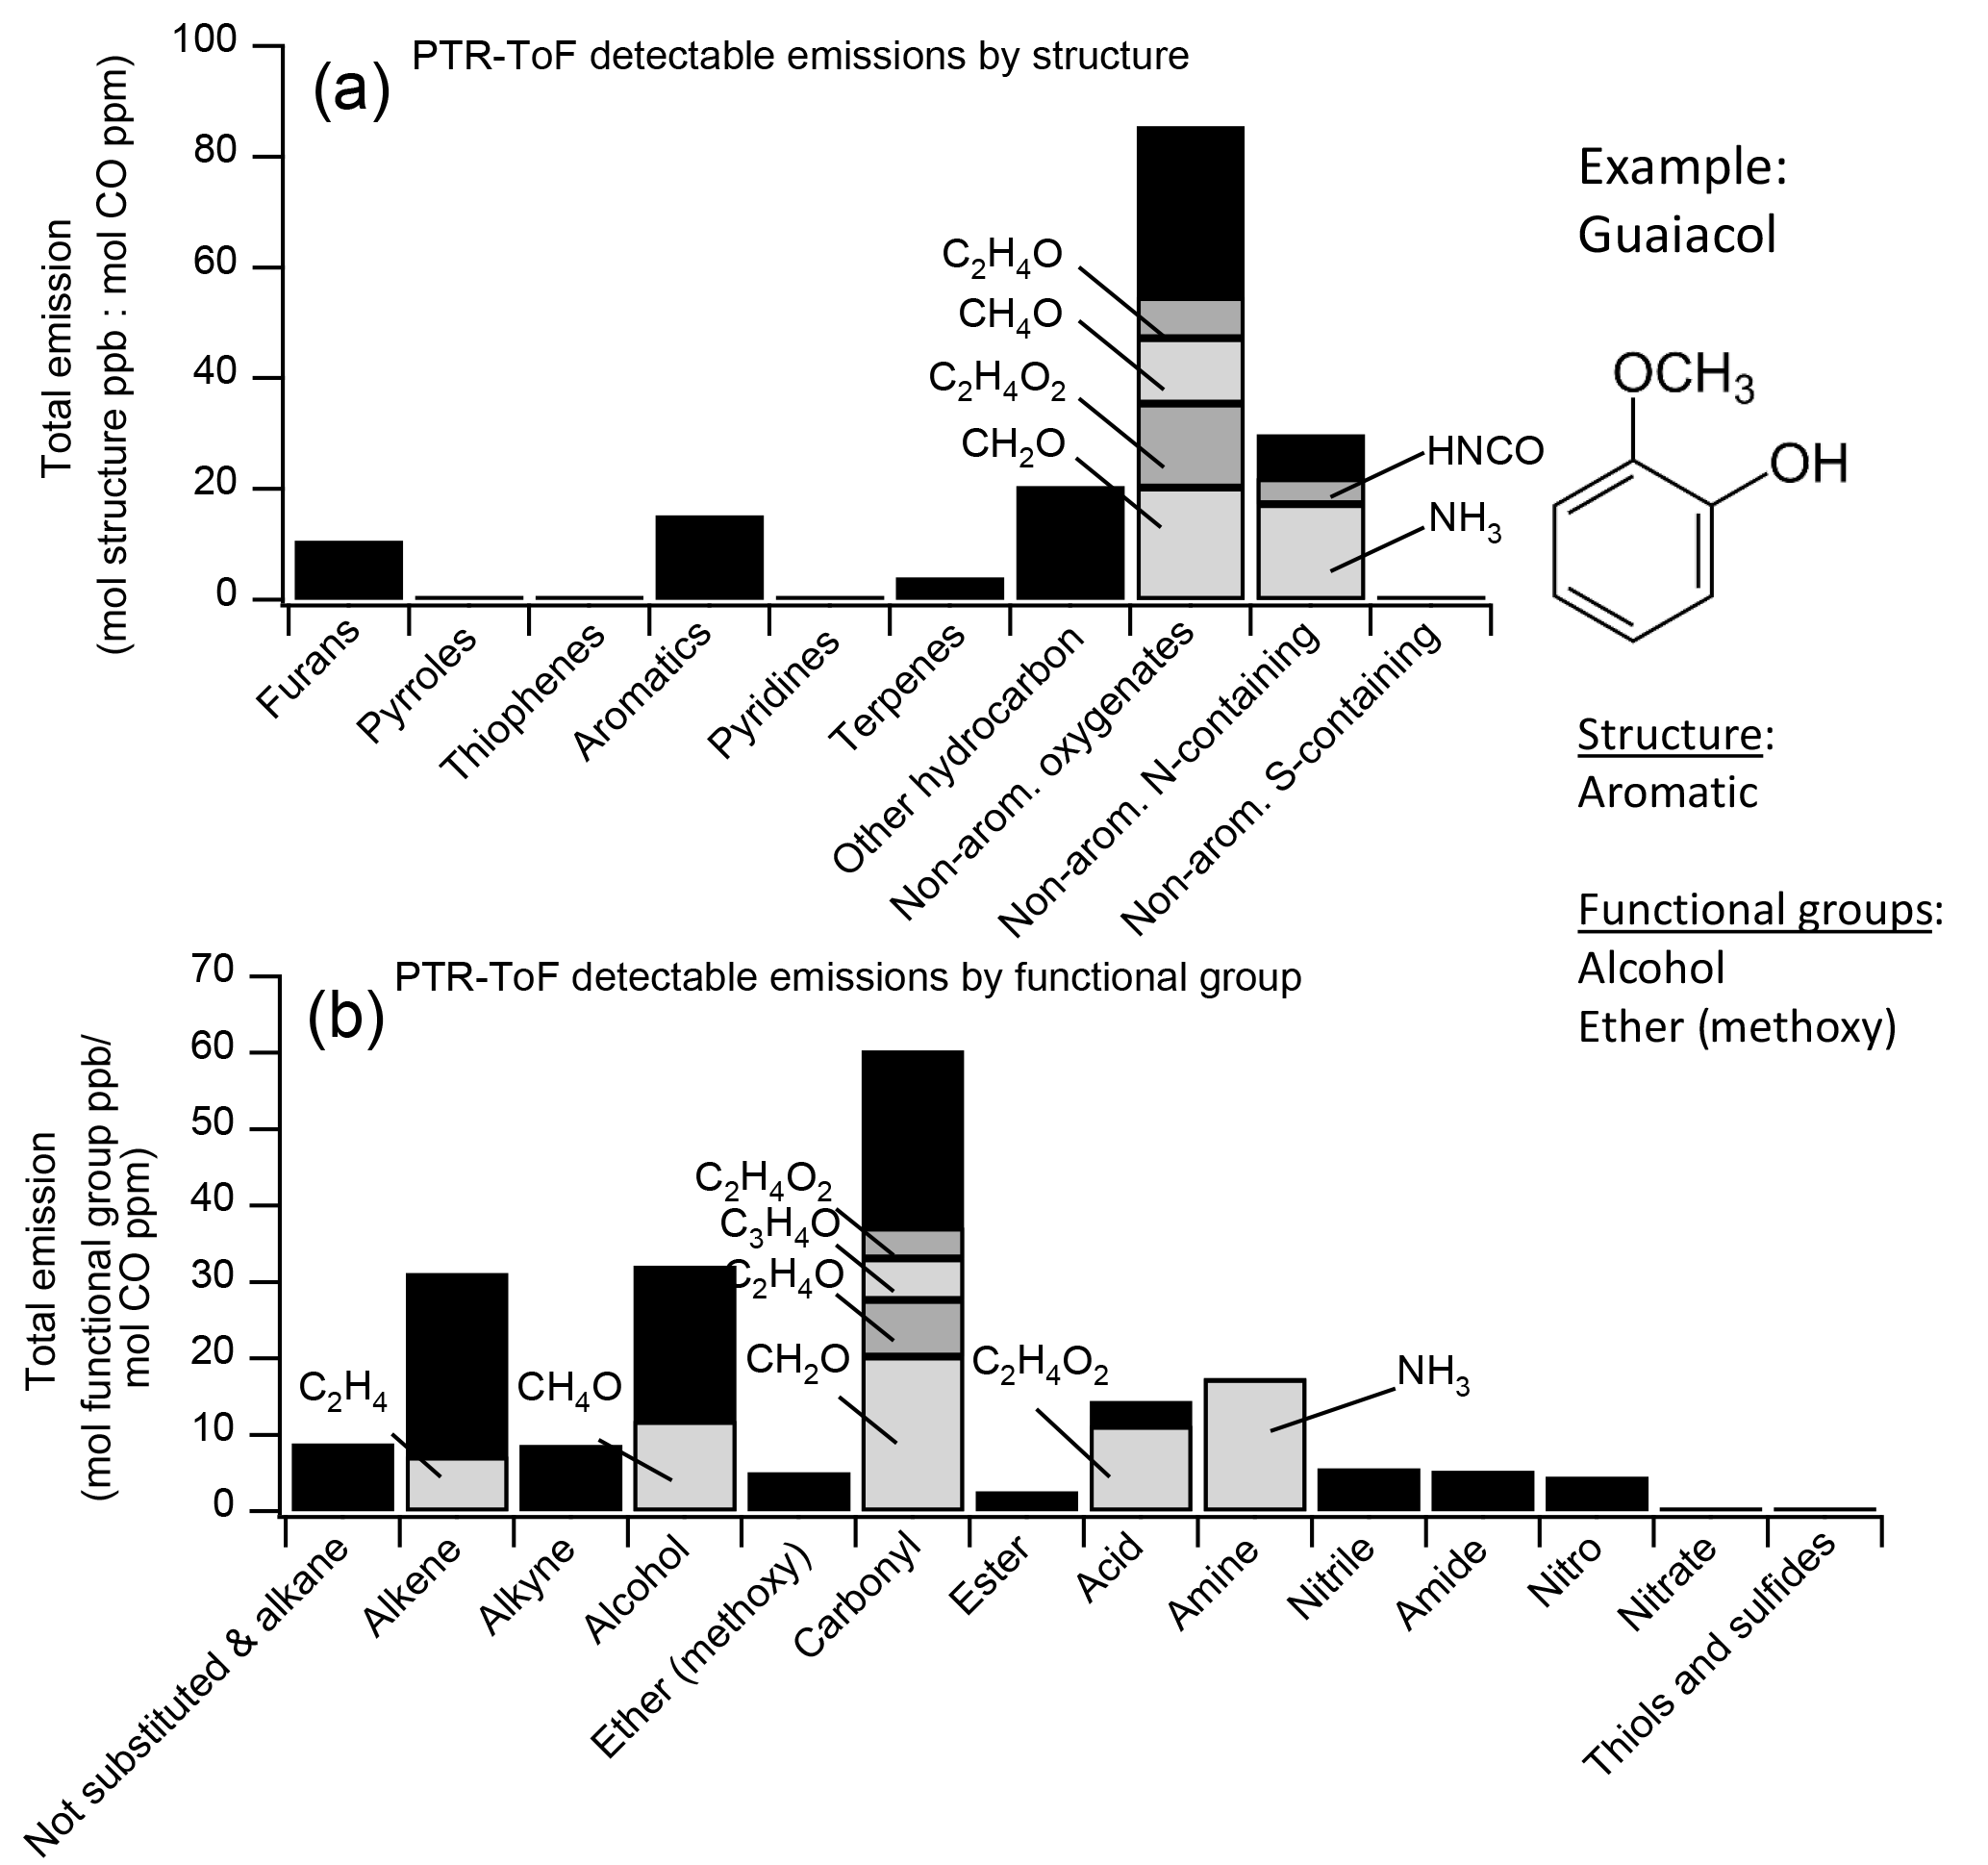 ACP - Non-methane organic gas emissions from biomass burning